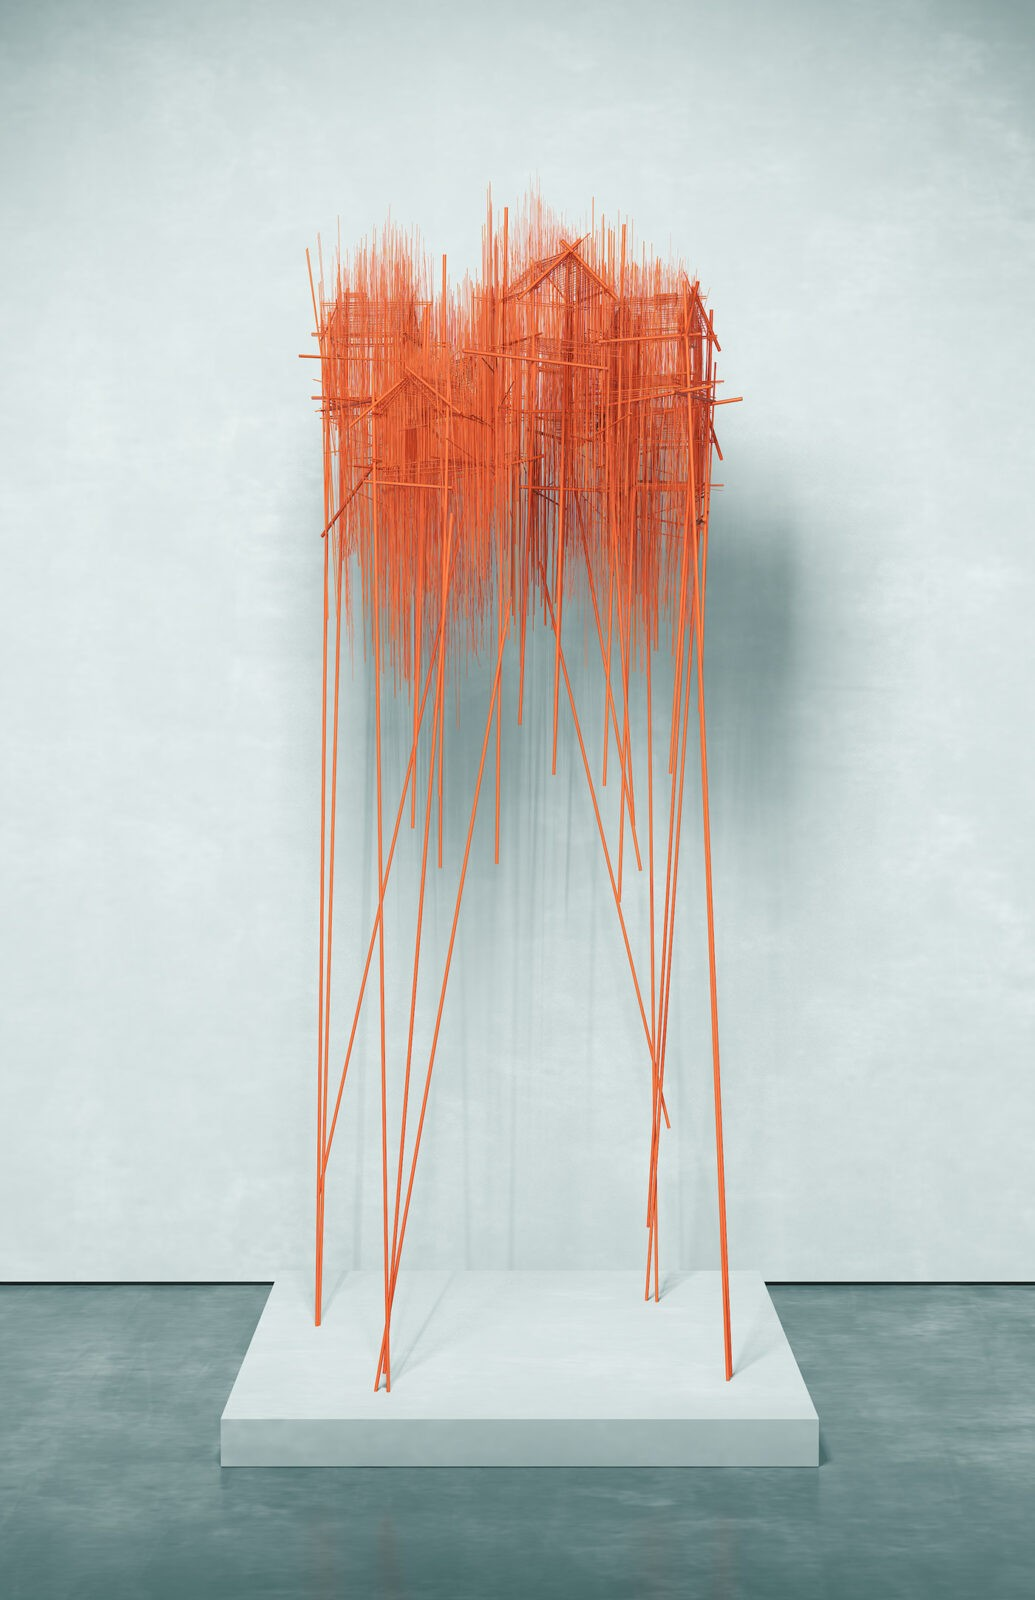 Endless history. The steel sculptures by David Moreno